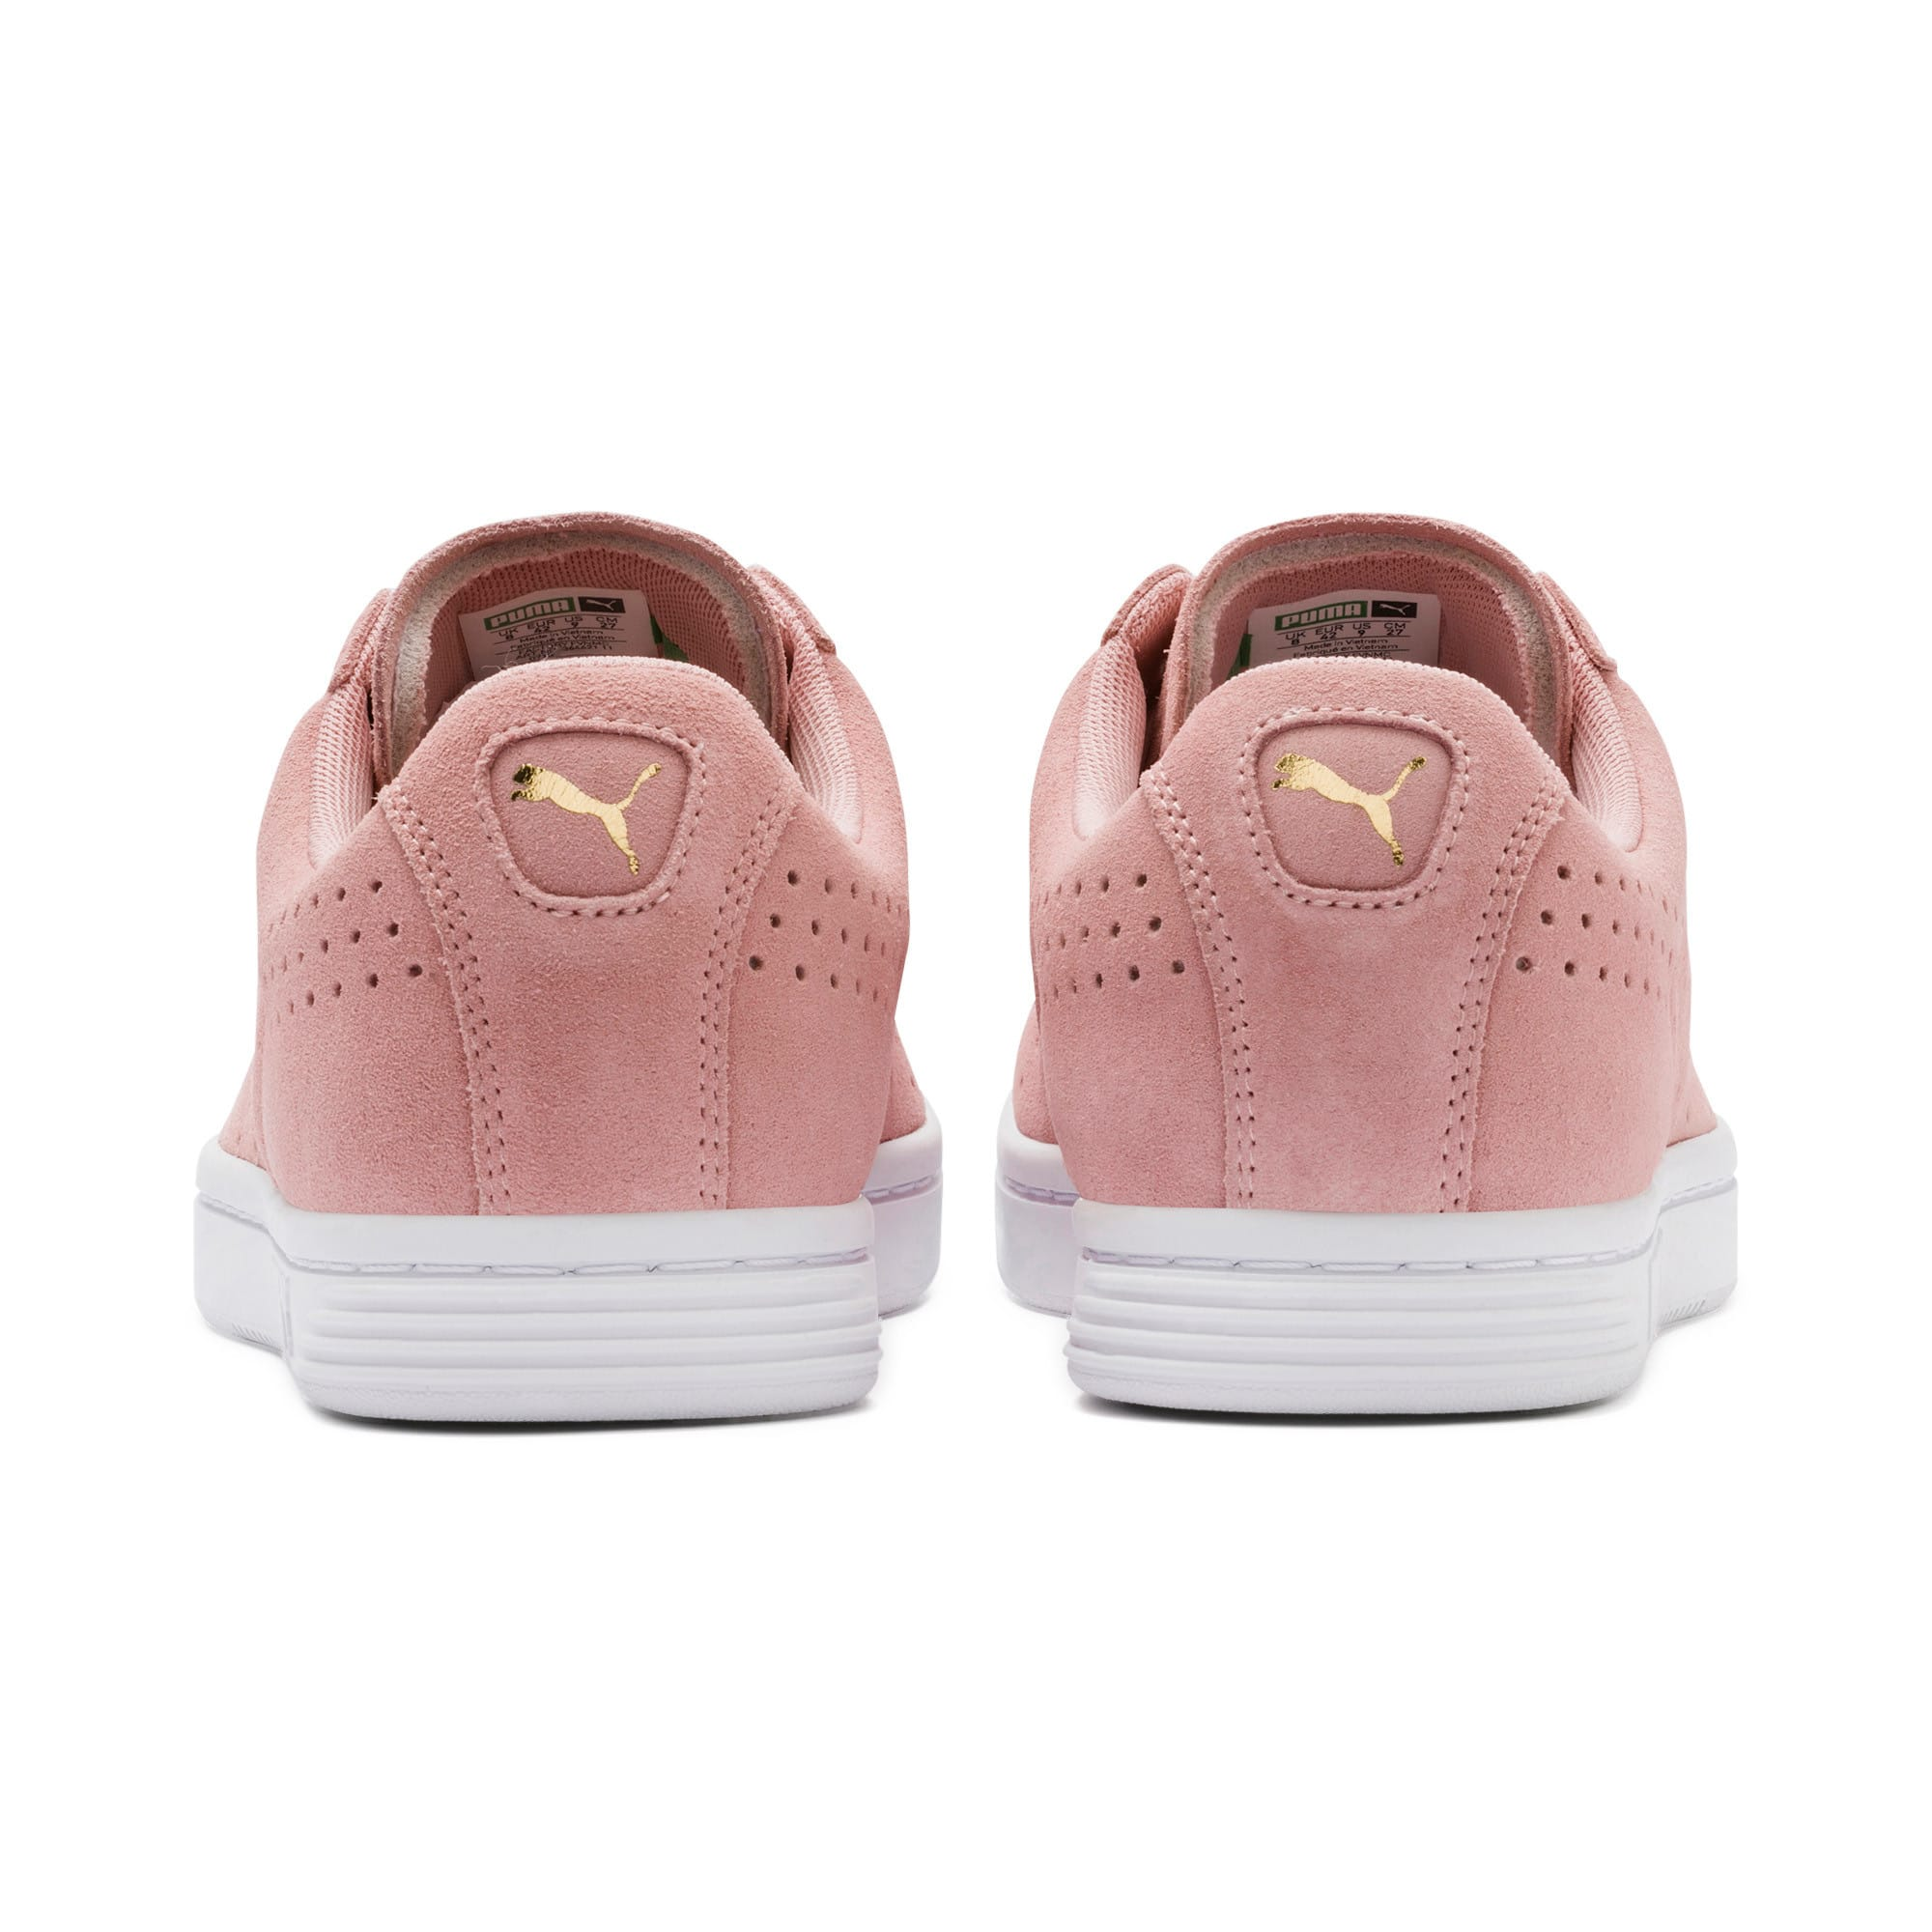 Thumbnail 5 of Court Star Suede Sneakers, Bridal Rose-Puma White, medium